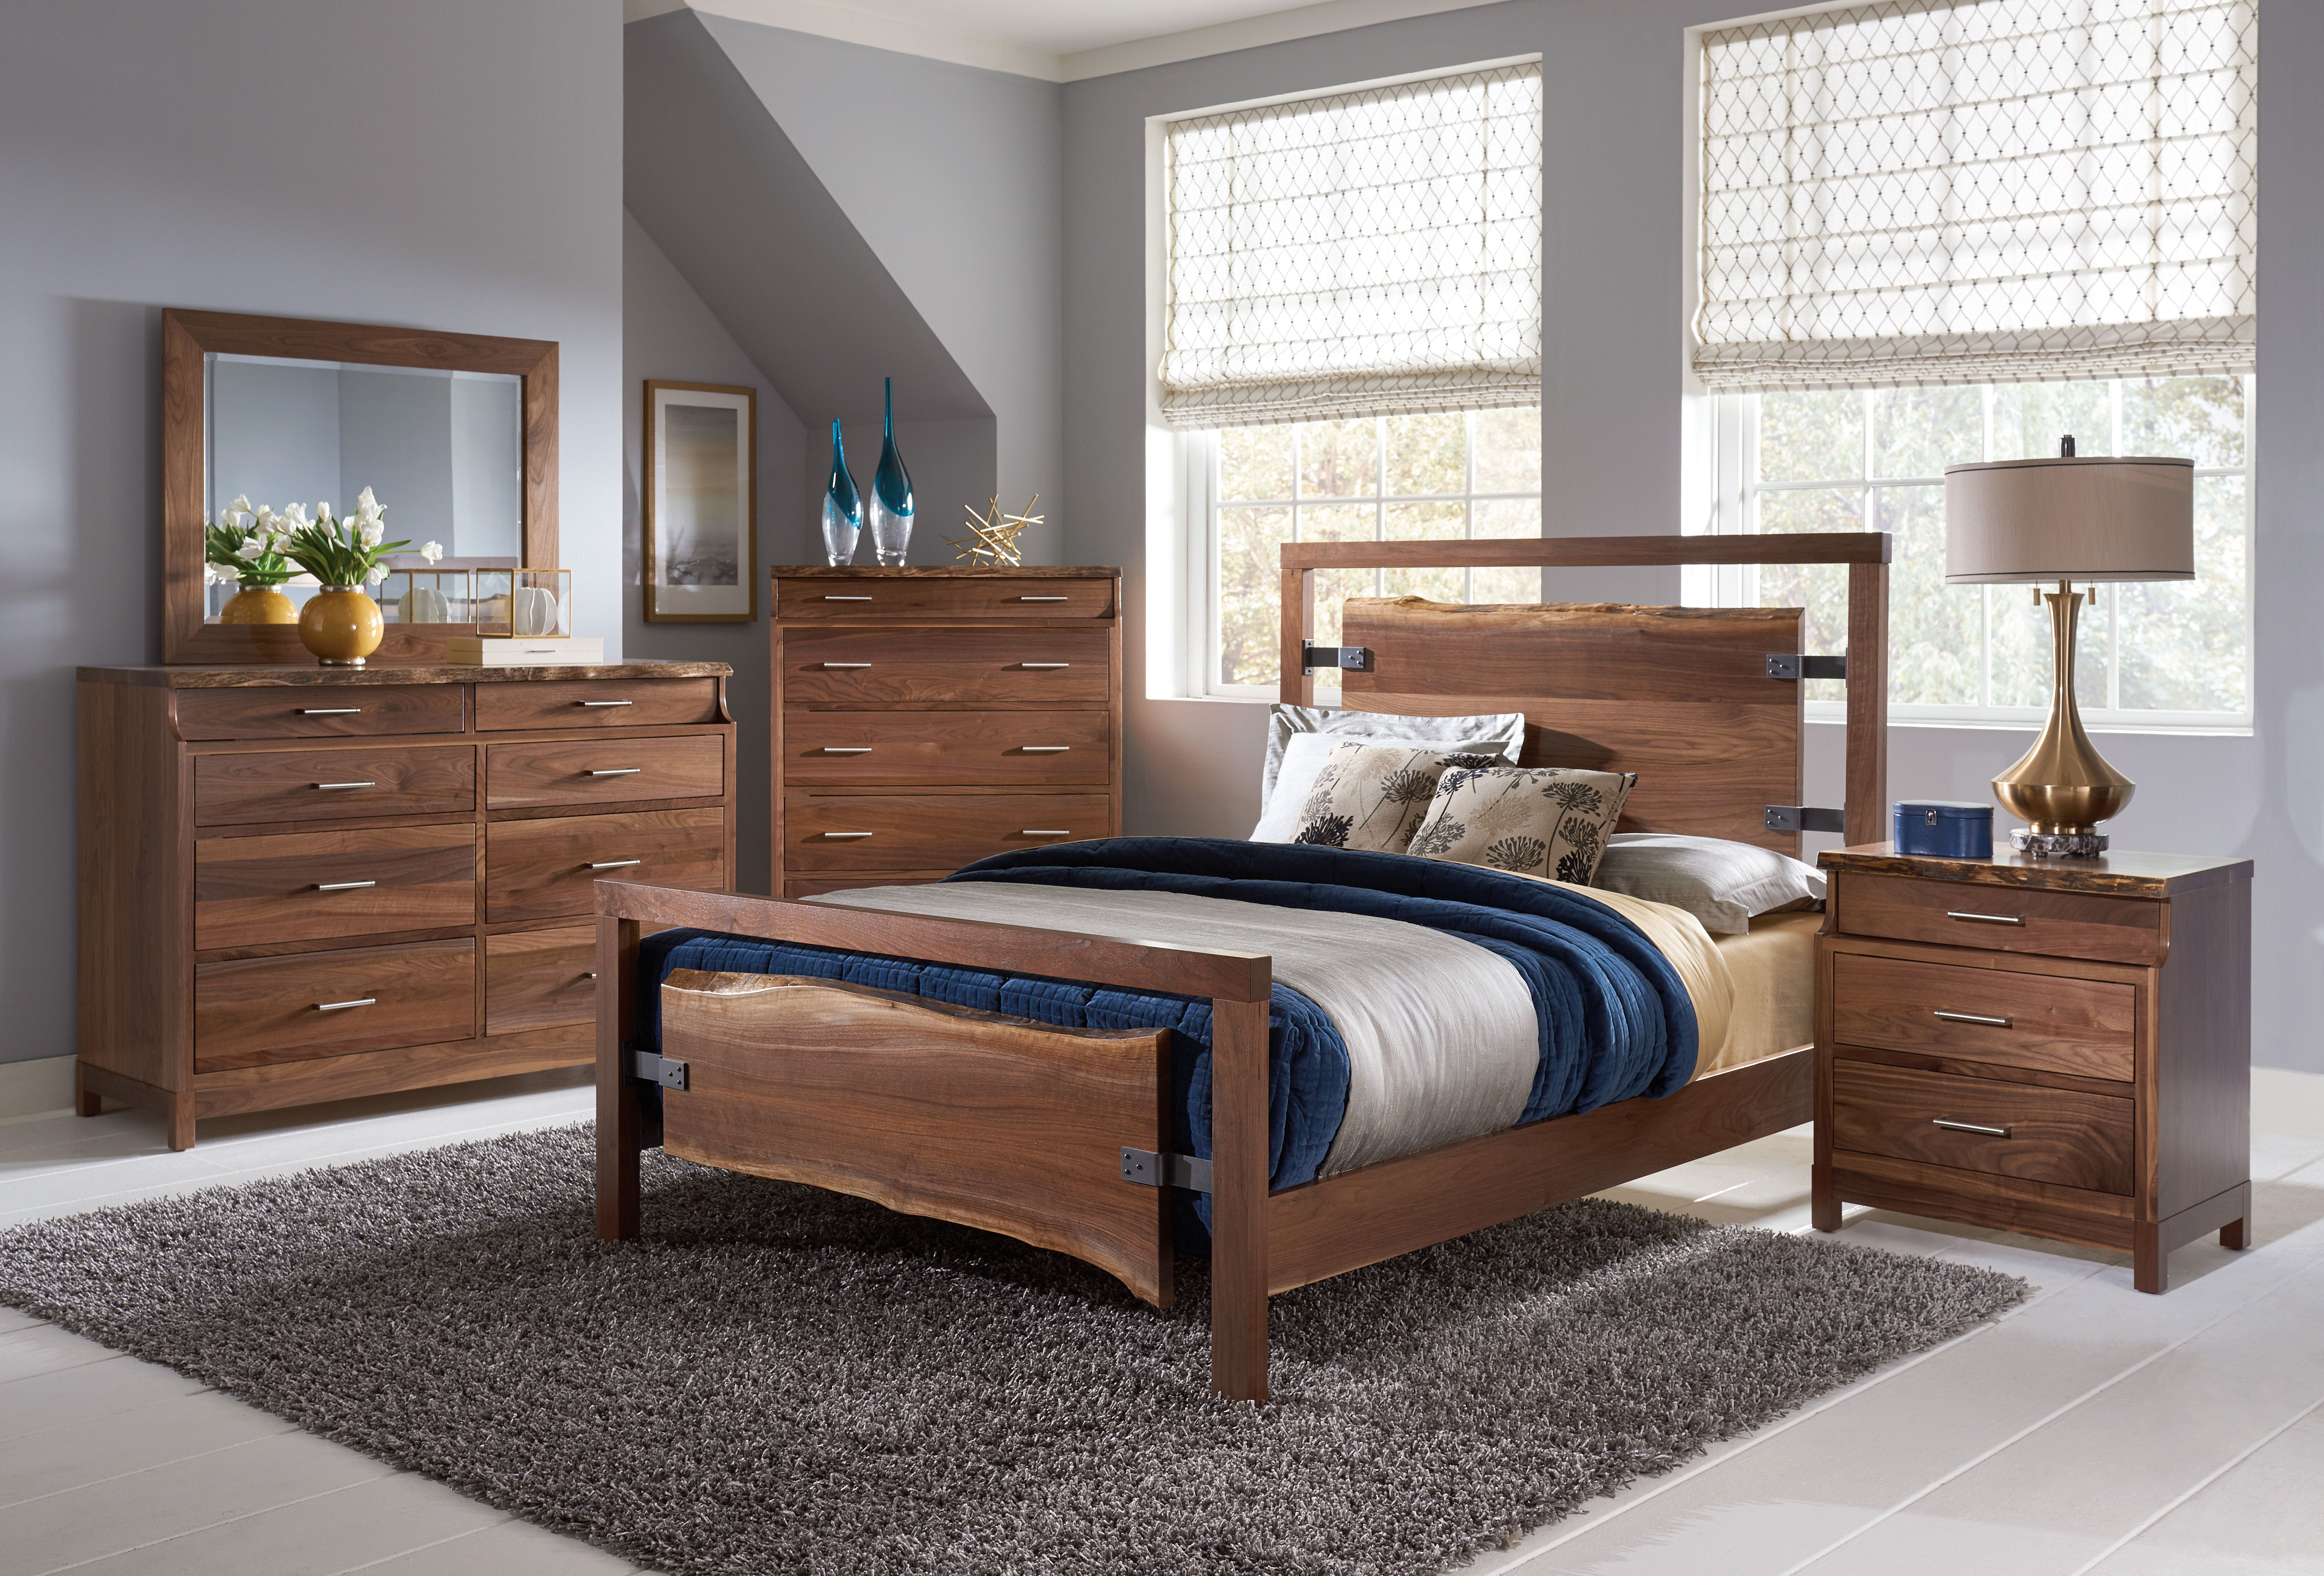 The beautiful Westmere bedroom set Live Edge